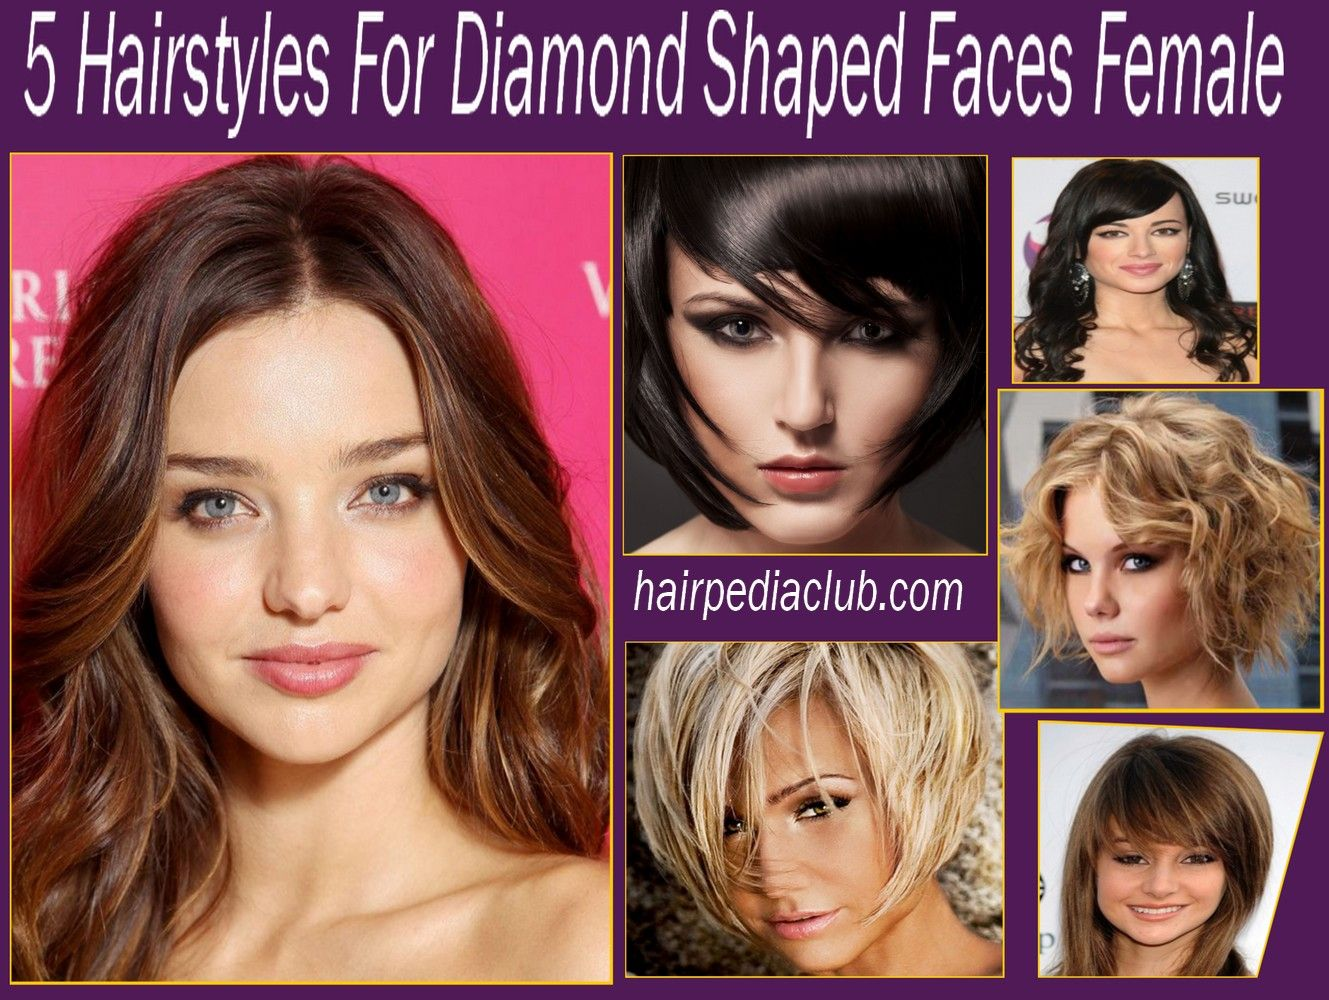 5 hairstyles for diamond shaped faces female | diamond face